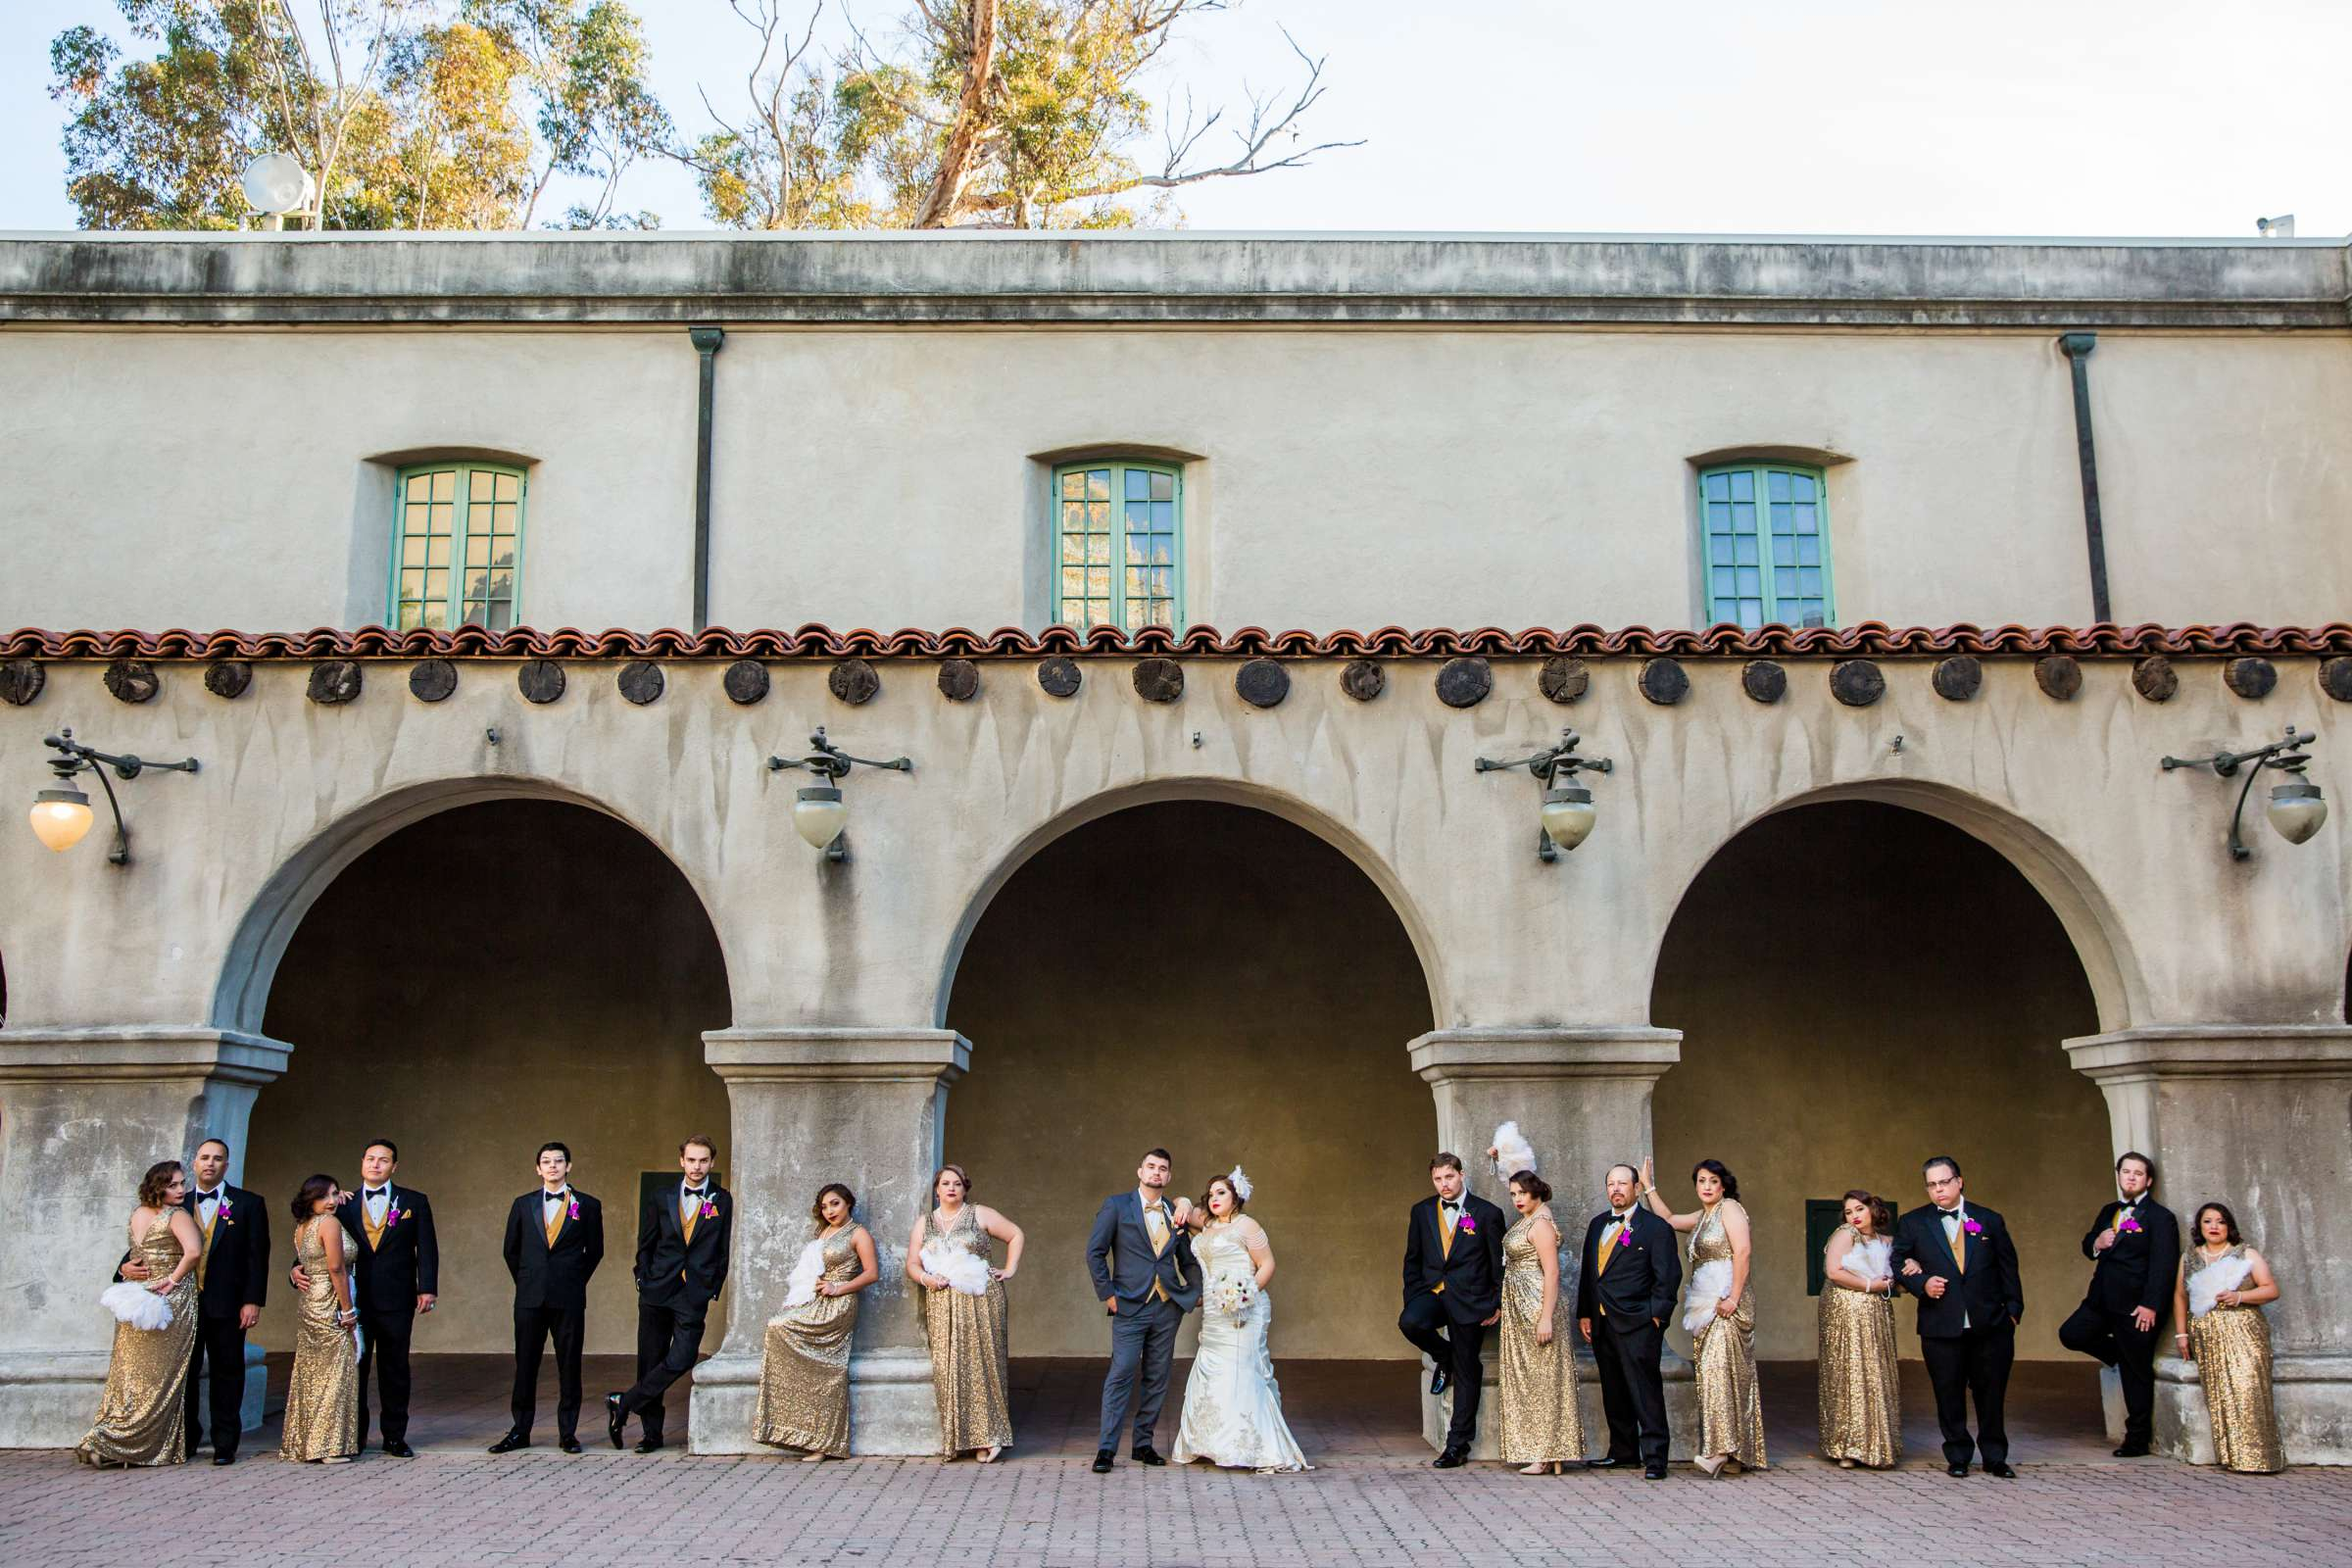 The Prado Wedding coordinated by Breezy Day Weddings, Aalis and Michael Wedding Photo #16 by True Photography